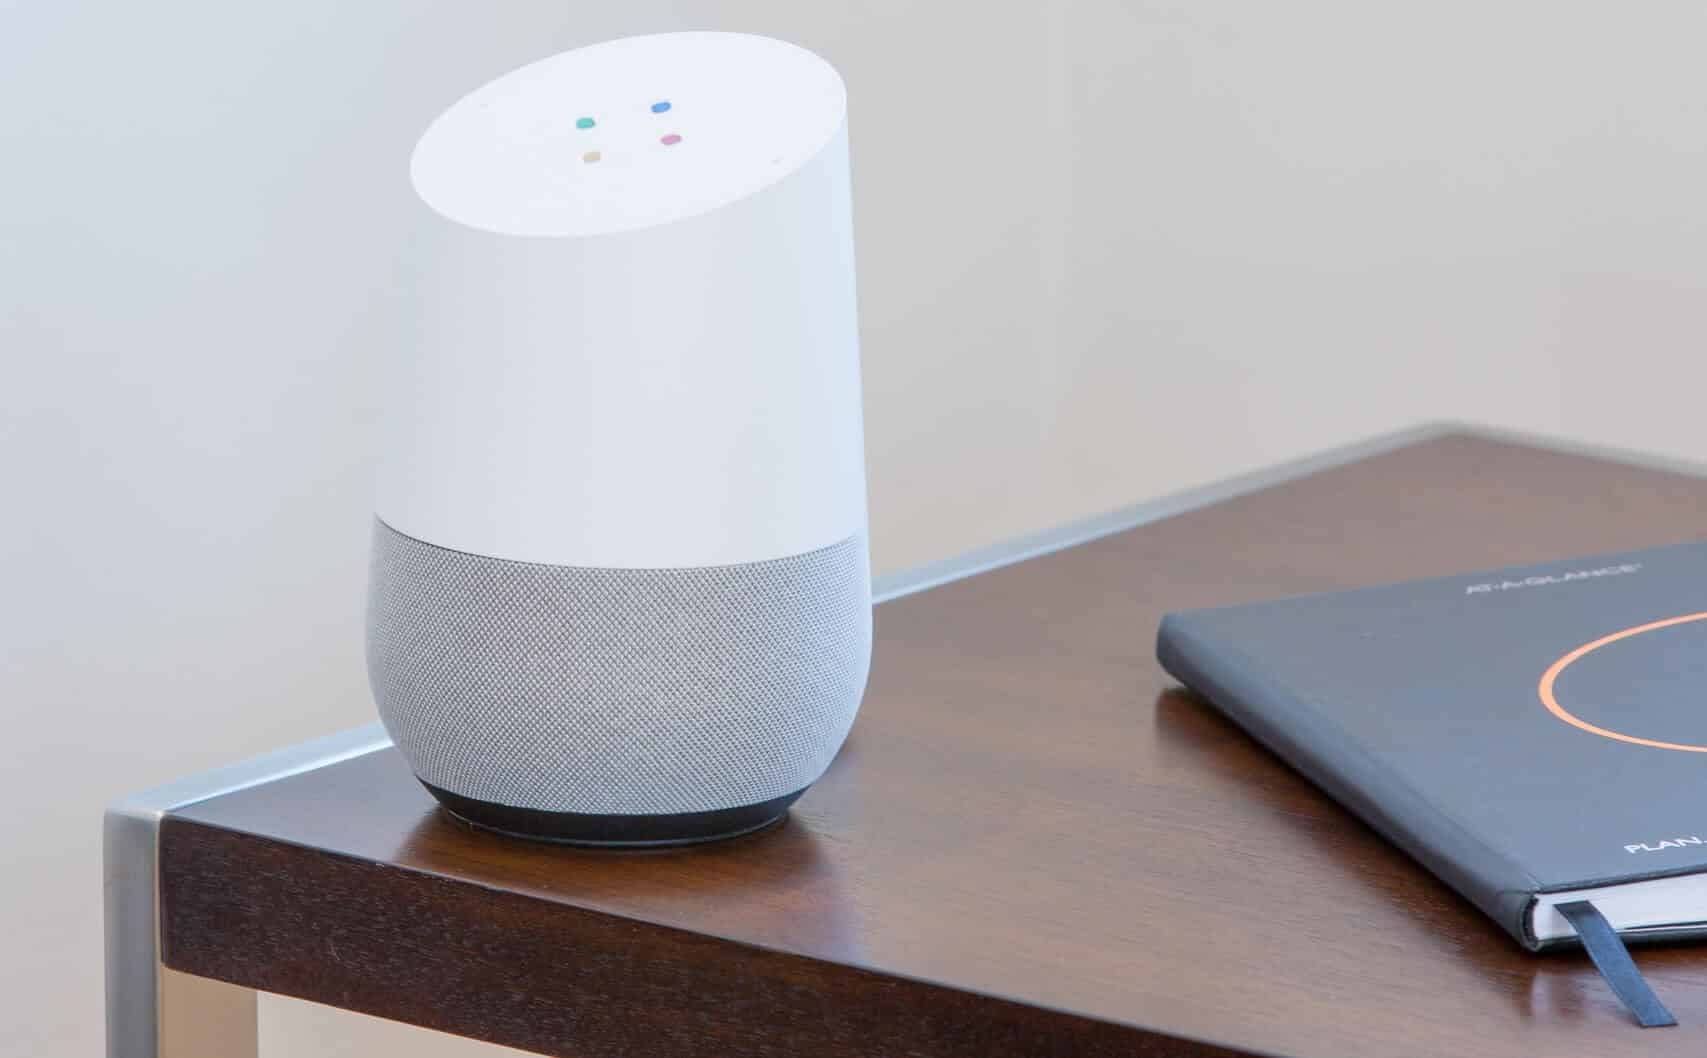 Google releases major update on Google Home, gets features that its competitors can't do